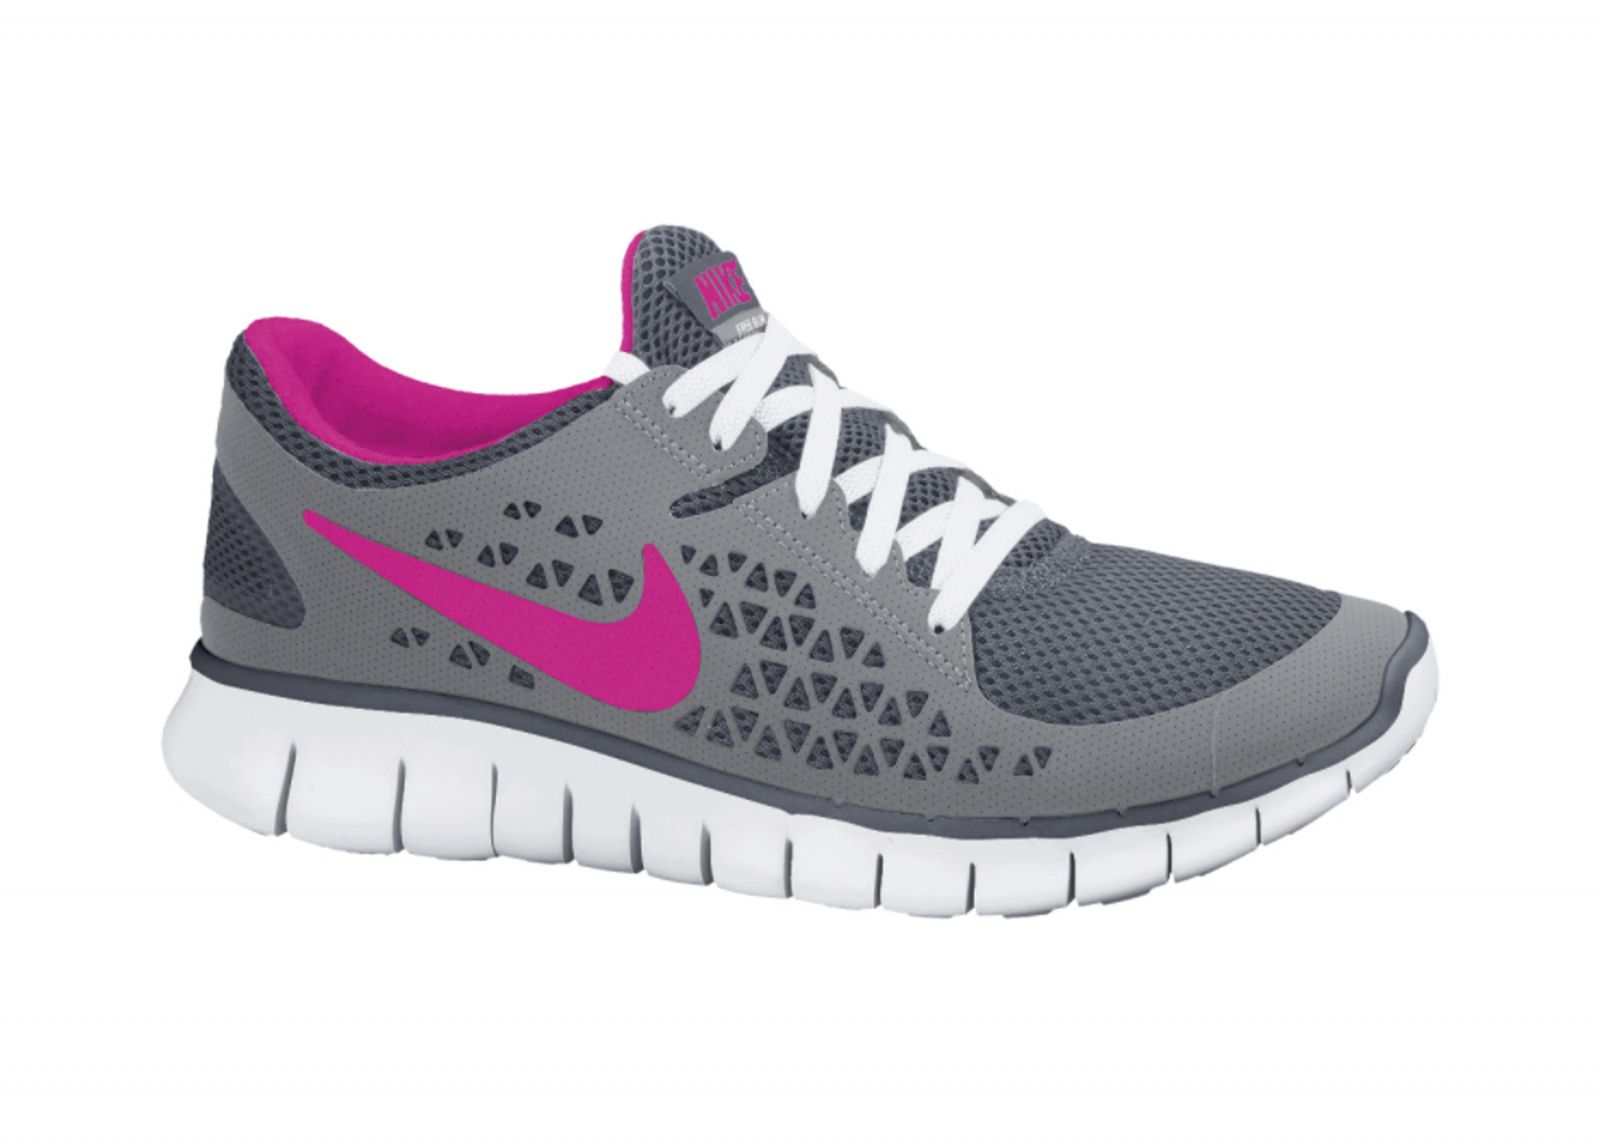 Los Angeles 410e0 d350c soulier jogging nike